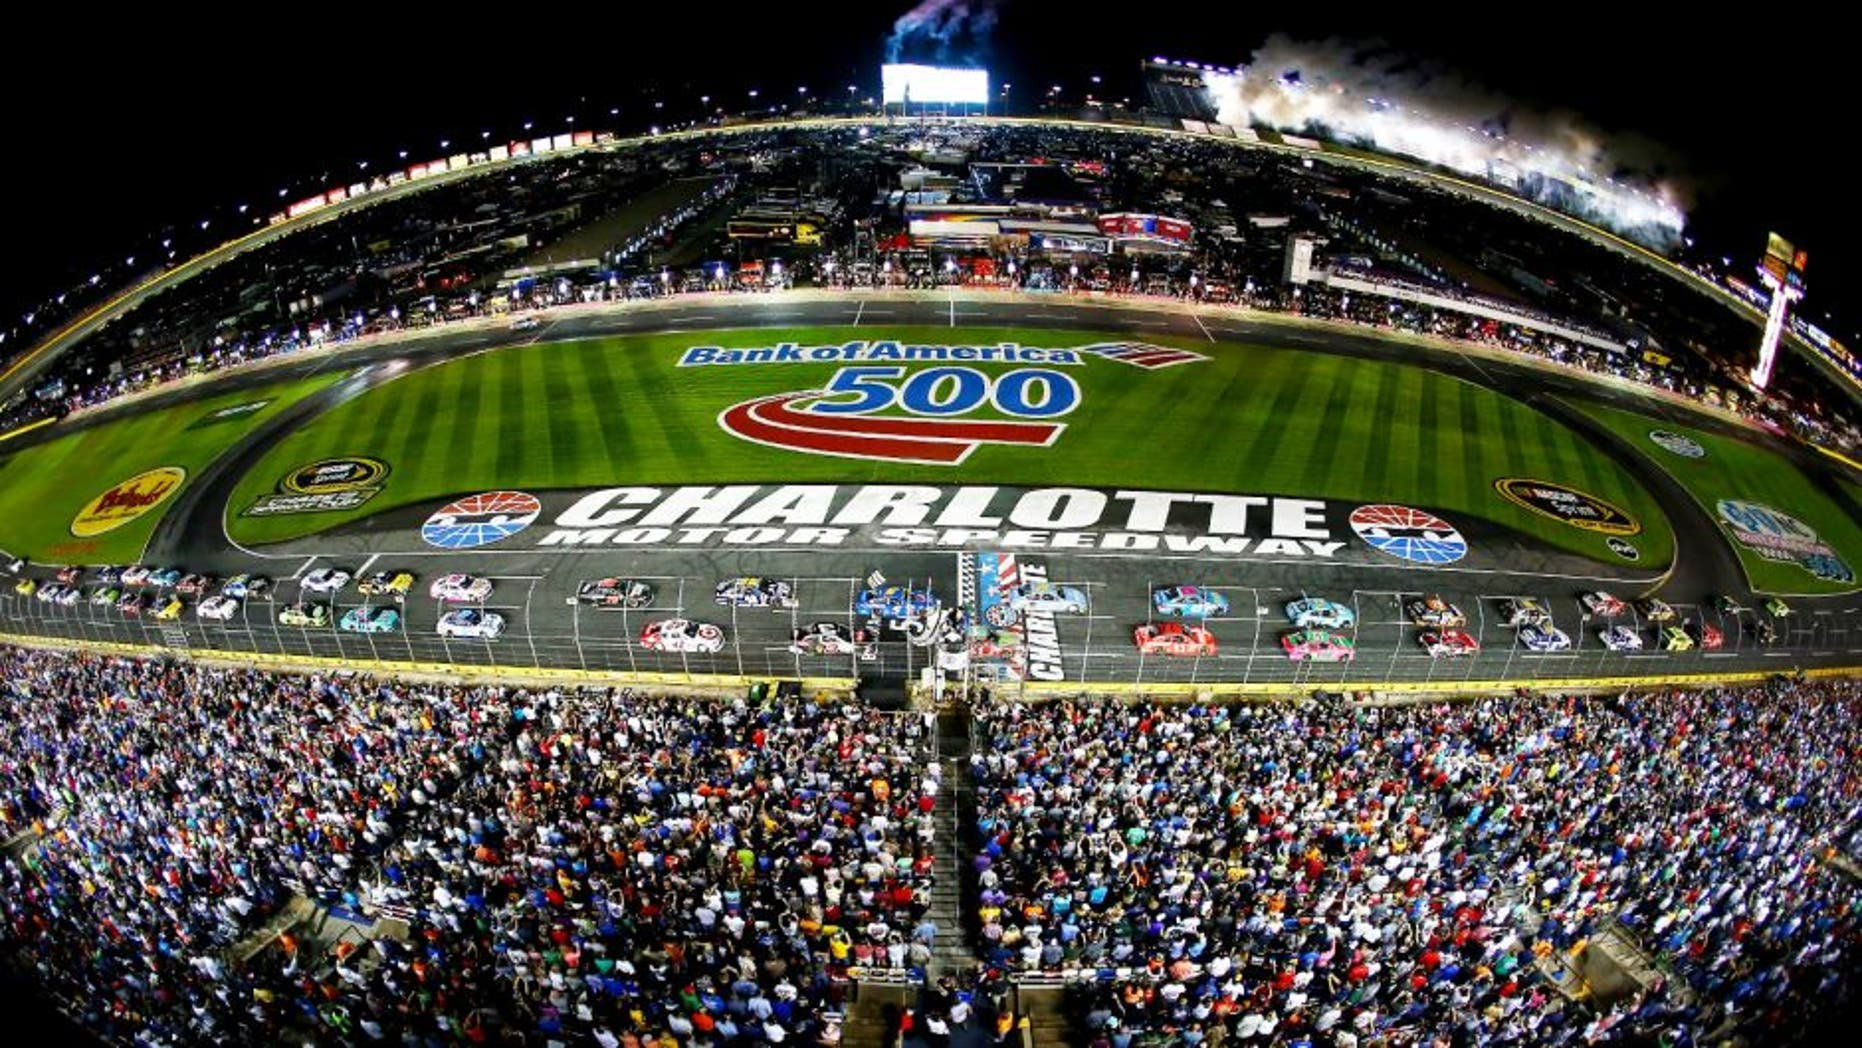 CHARLOTTE, NC - OCTOBER 11: Kyle Busch, driver of the #18 Doublemint Toyota, and Jeff Gordon, driver of the #24 Drive To End Hunger Chevrolet, lead the field to the green flag for the running of the NASCAR Sprint Cup Series Bank of America 500 at Charlotte Motor Speedway on October 11, 2014 in Charlotte, North Carolina. (Photo by Streeter Lecka/Getty Images)